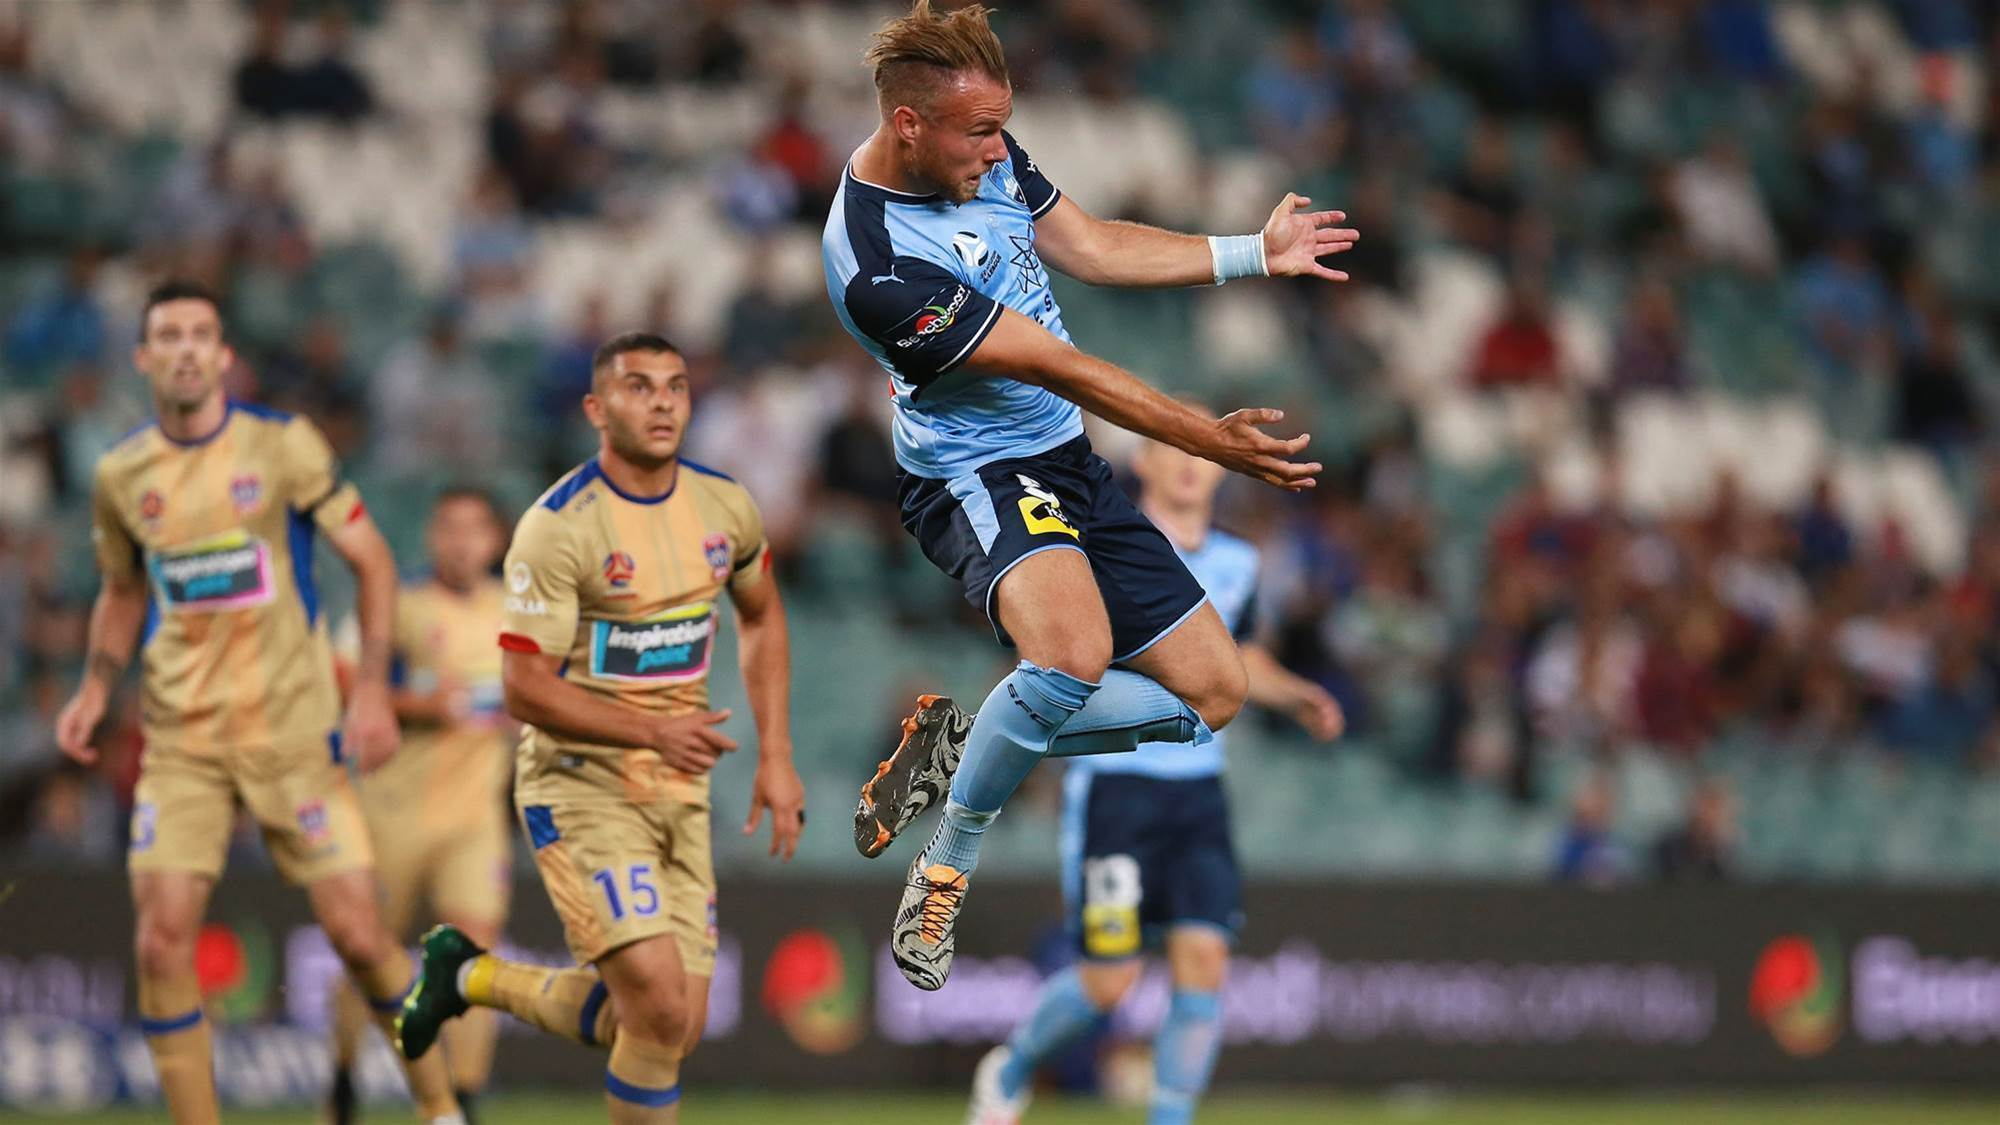 Sydney FC v Newcastle Jets player ratings